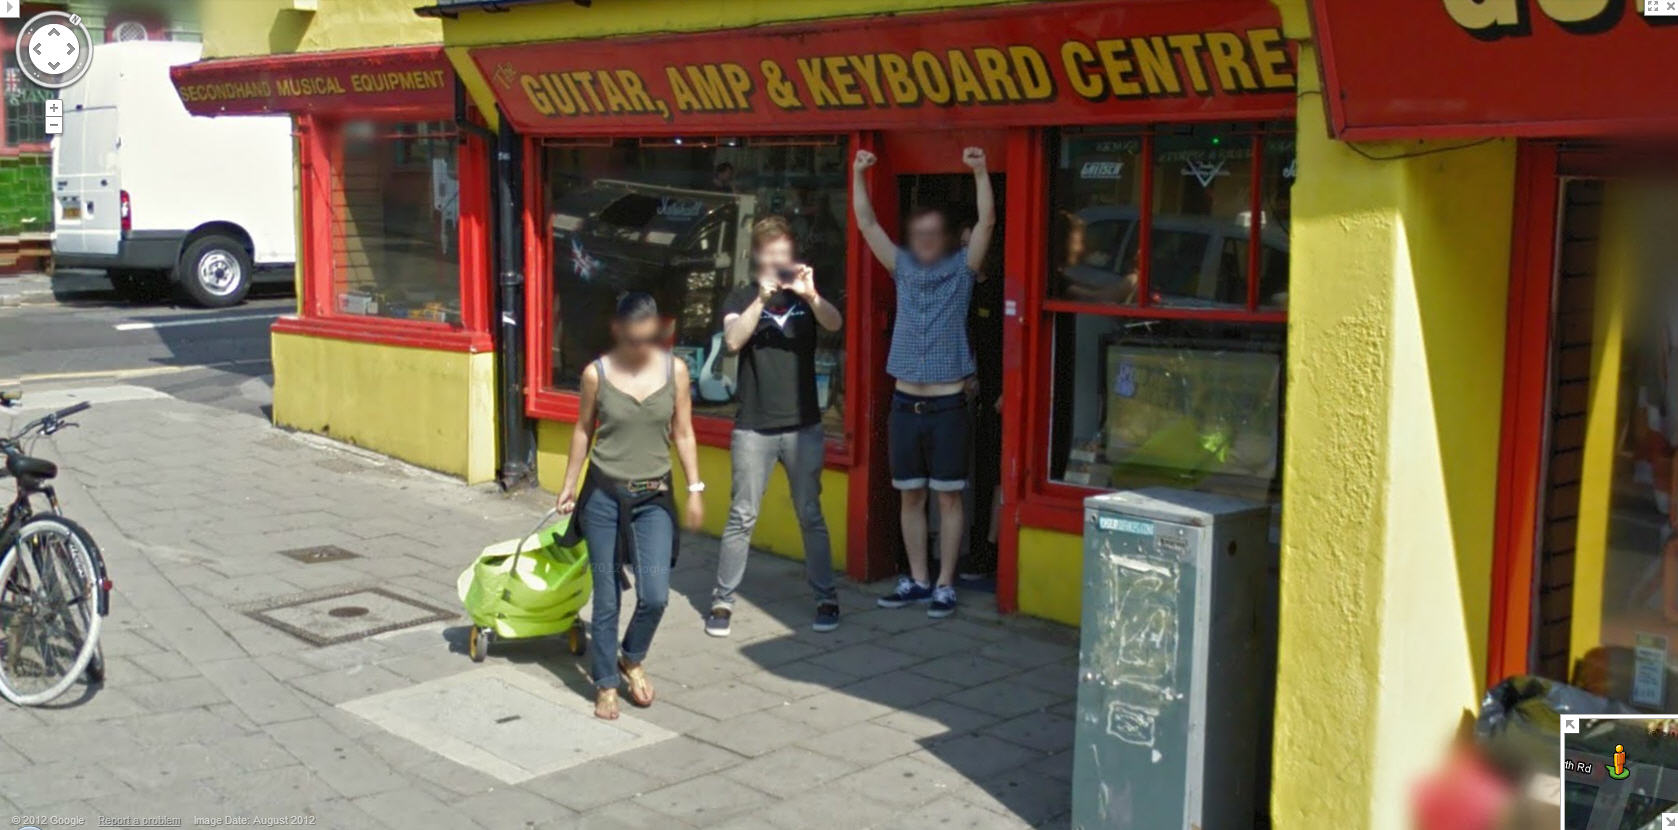 These UK Music Store Owners are happy to see Google Street